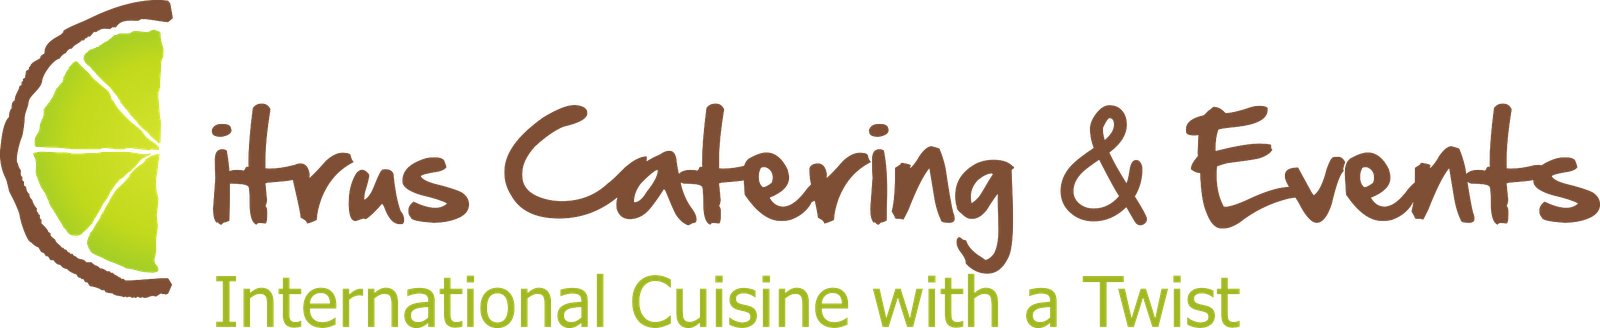 Citrus Catering & Events: The Foodie Blog